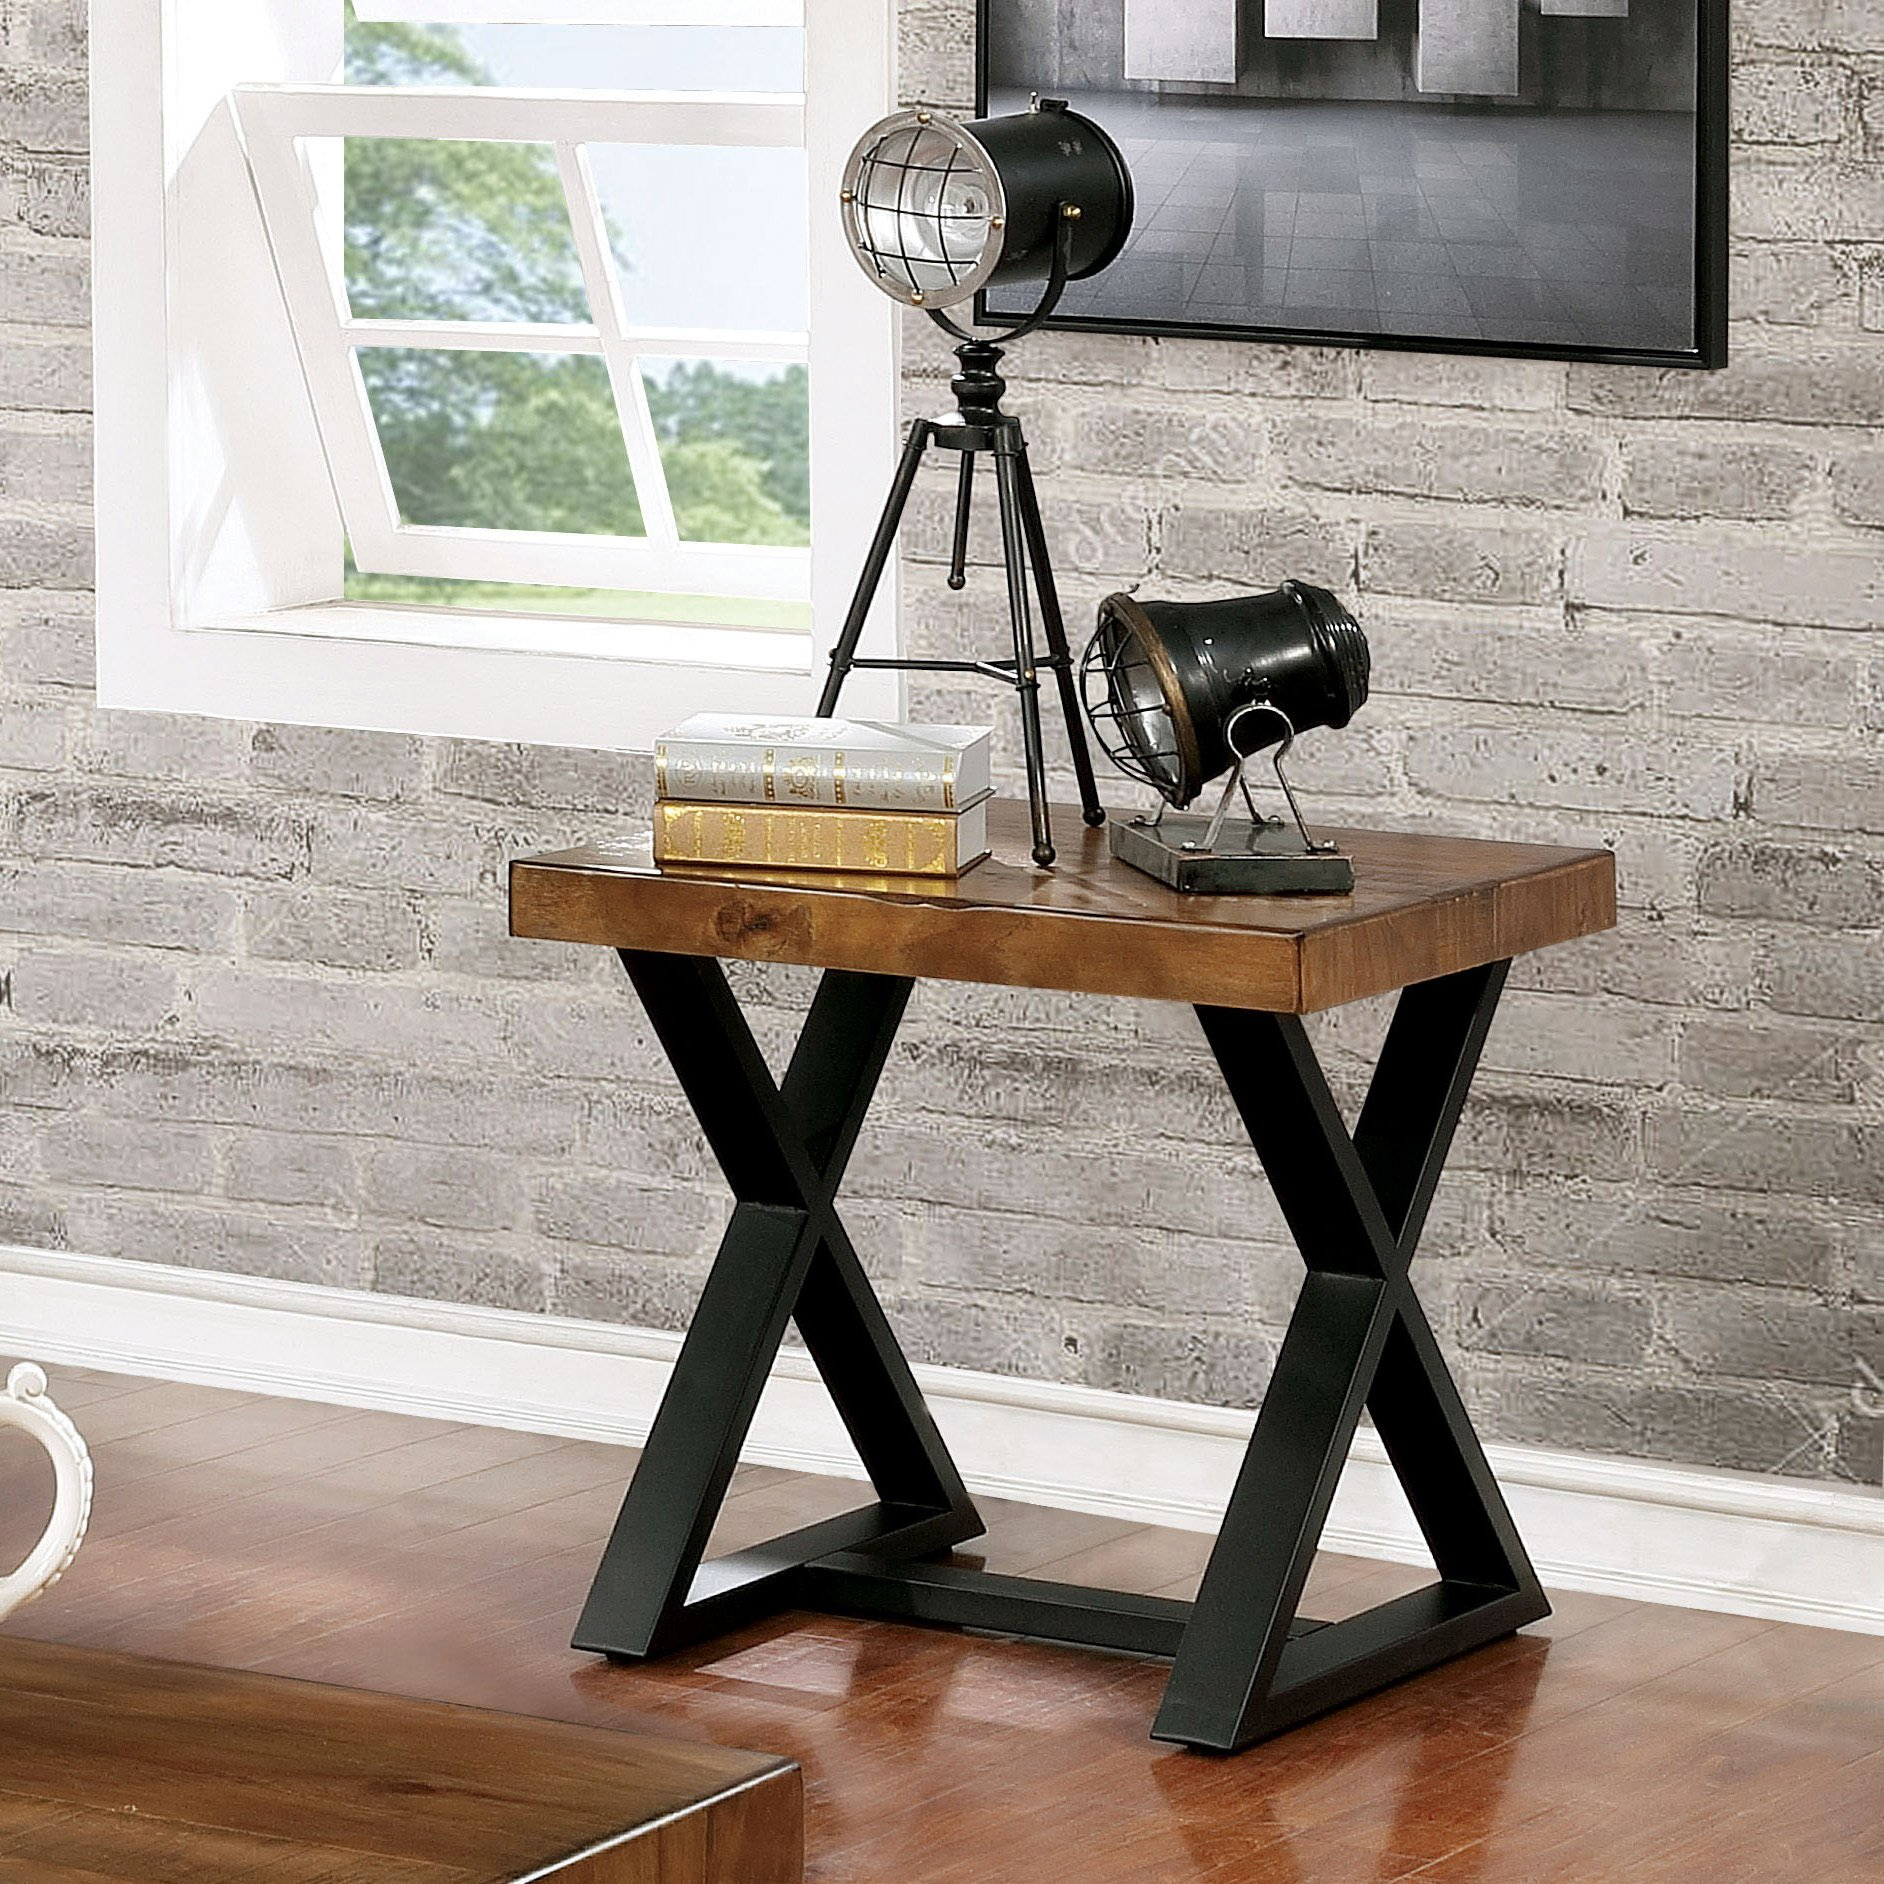 furniture america wildrow black wood trestle end table with rustic two tone room essentials accent oak finish free shipping today bathroom caddy unique sofa tables concrete look